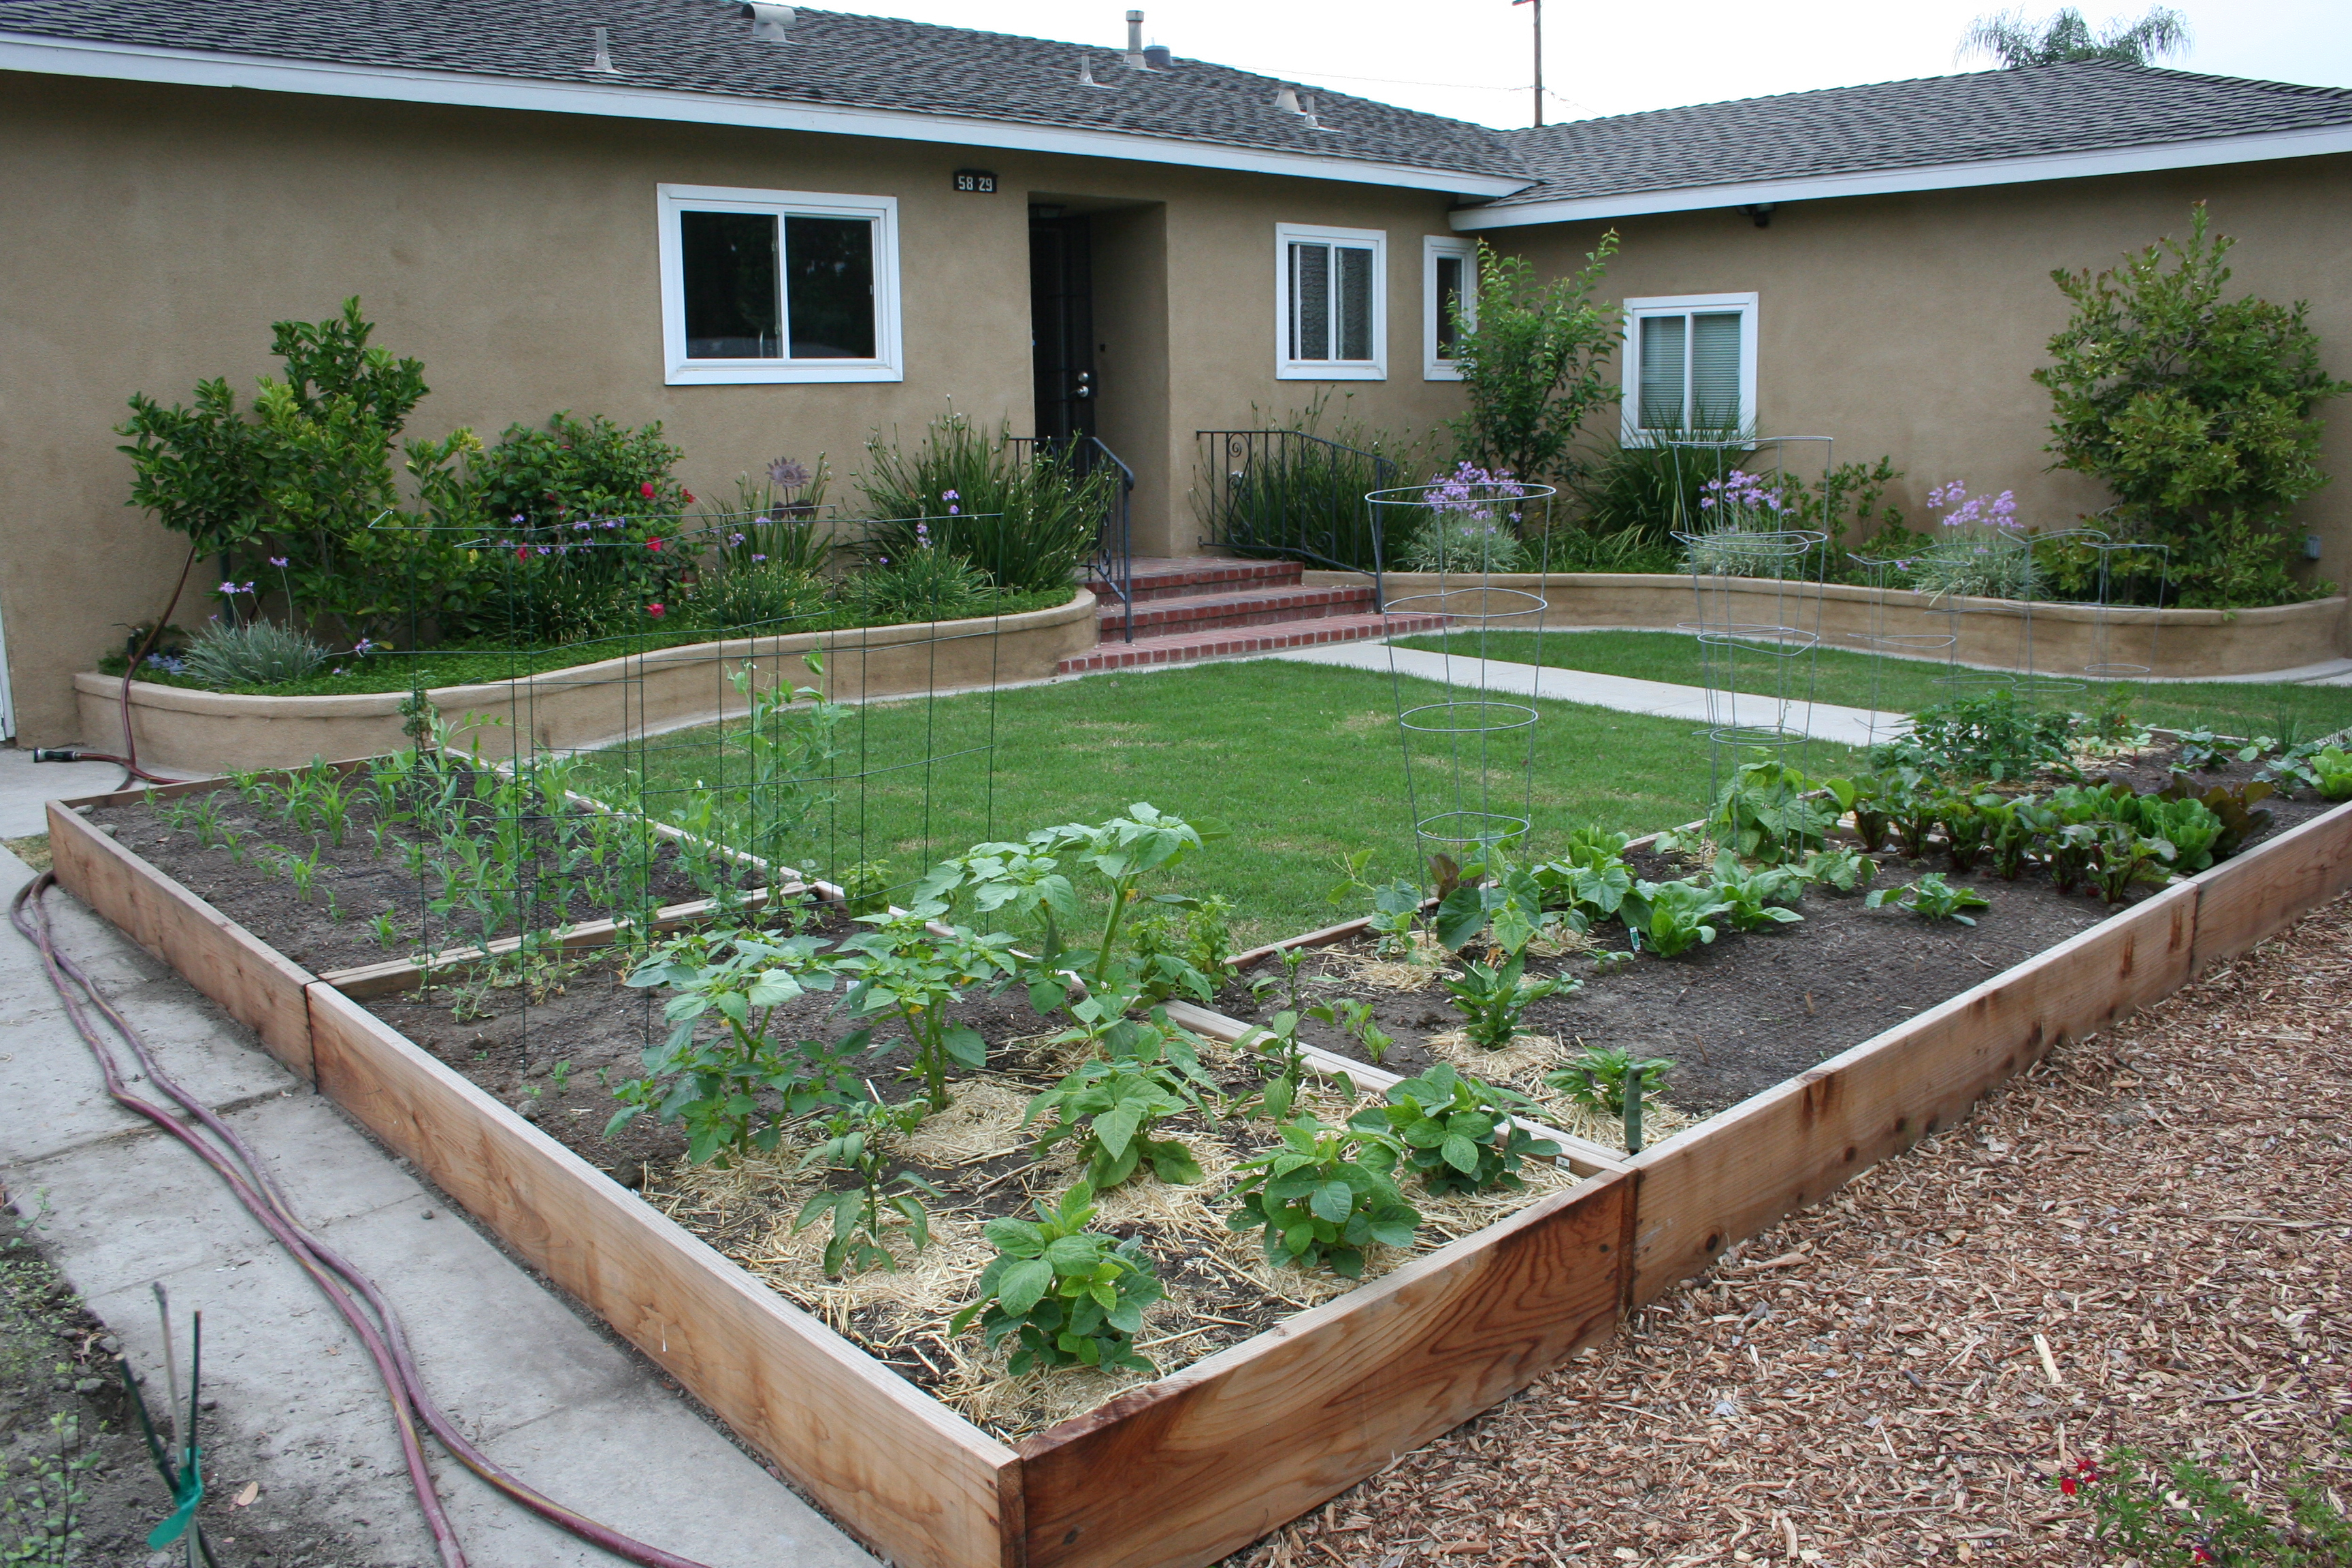 10 Great Front Yard Vegetable Garden Ideas 2020